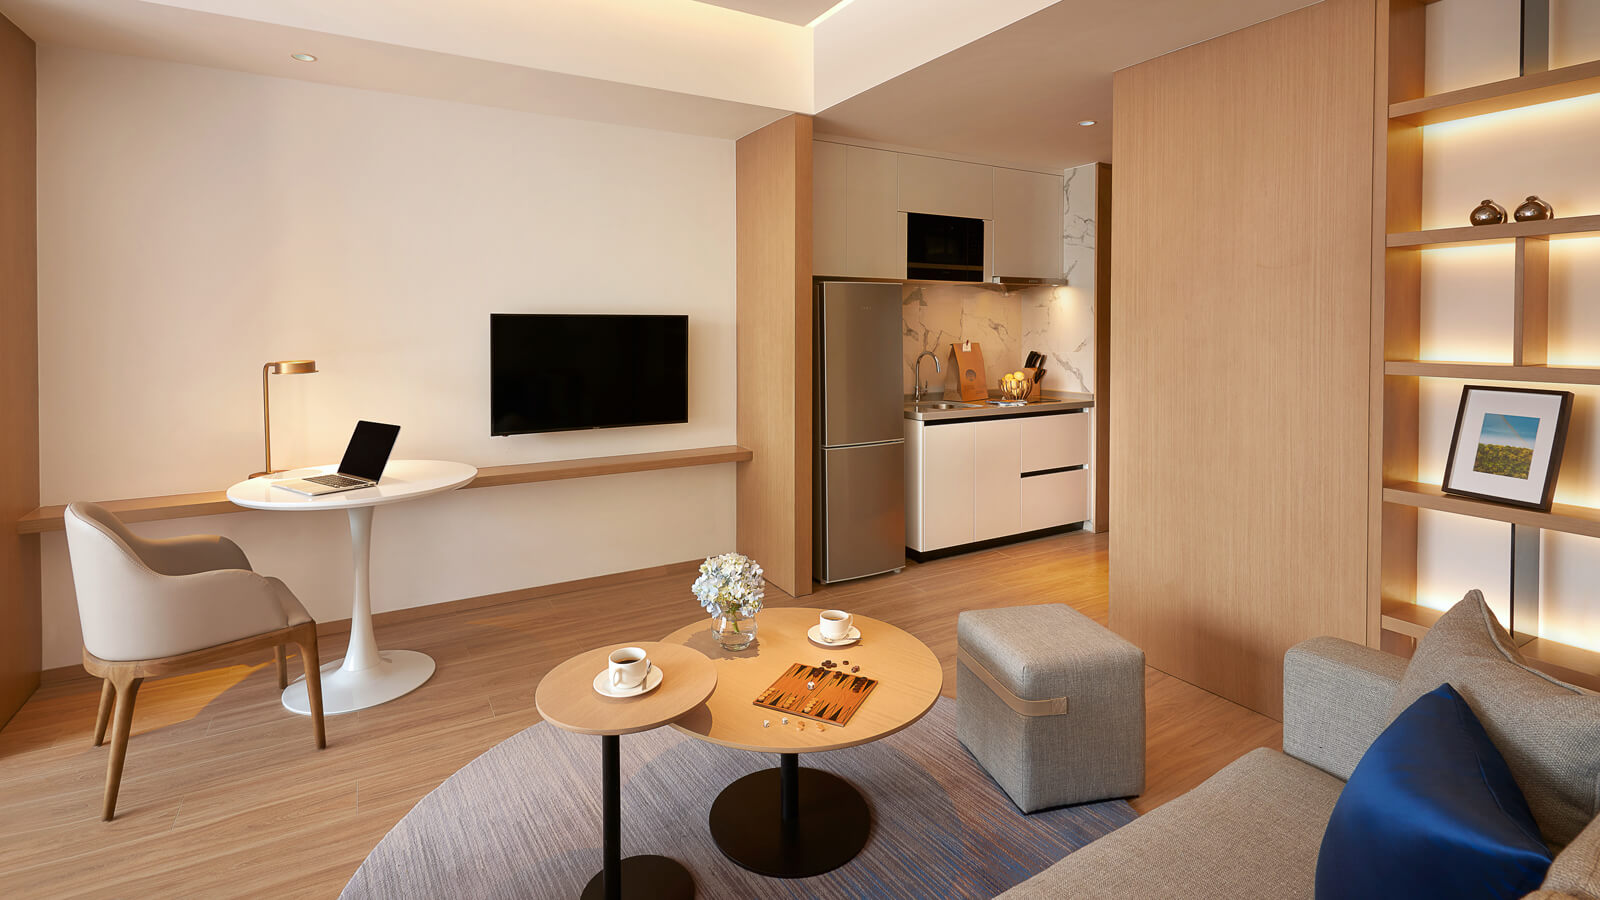 Studio Deluxe - Living Area and Kitchenette